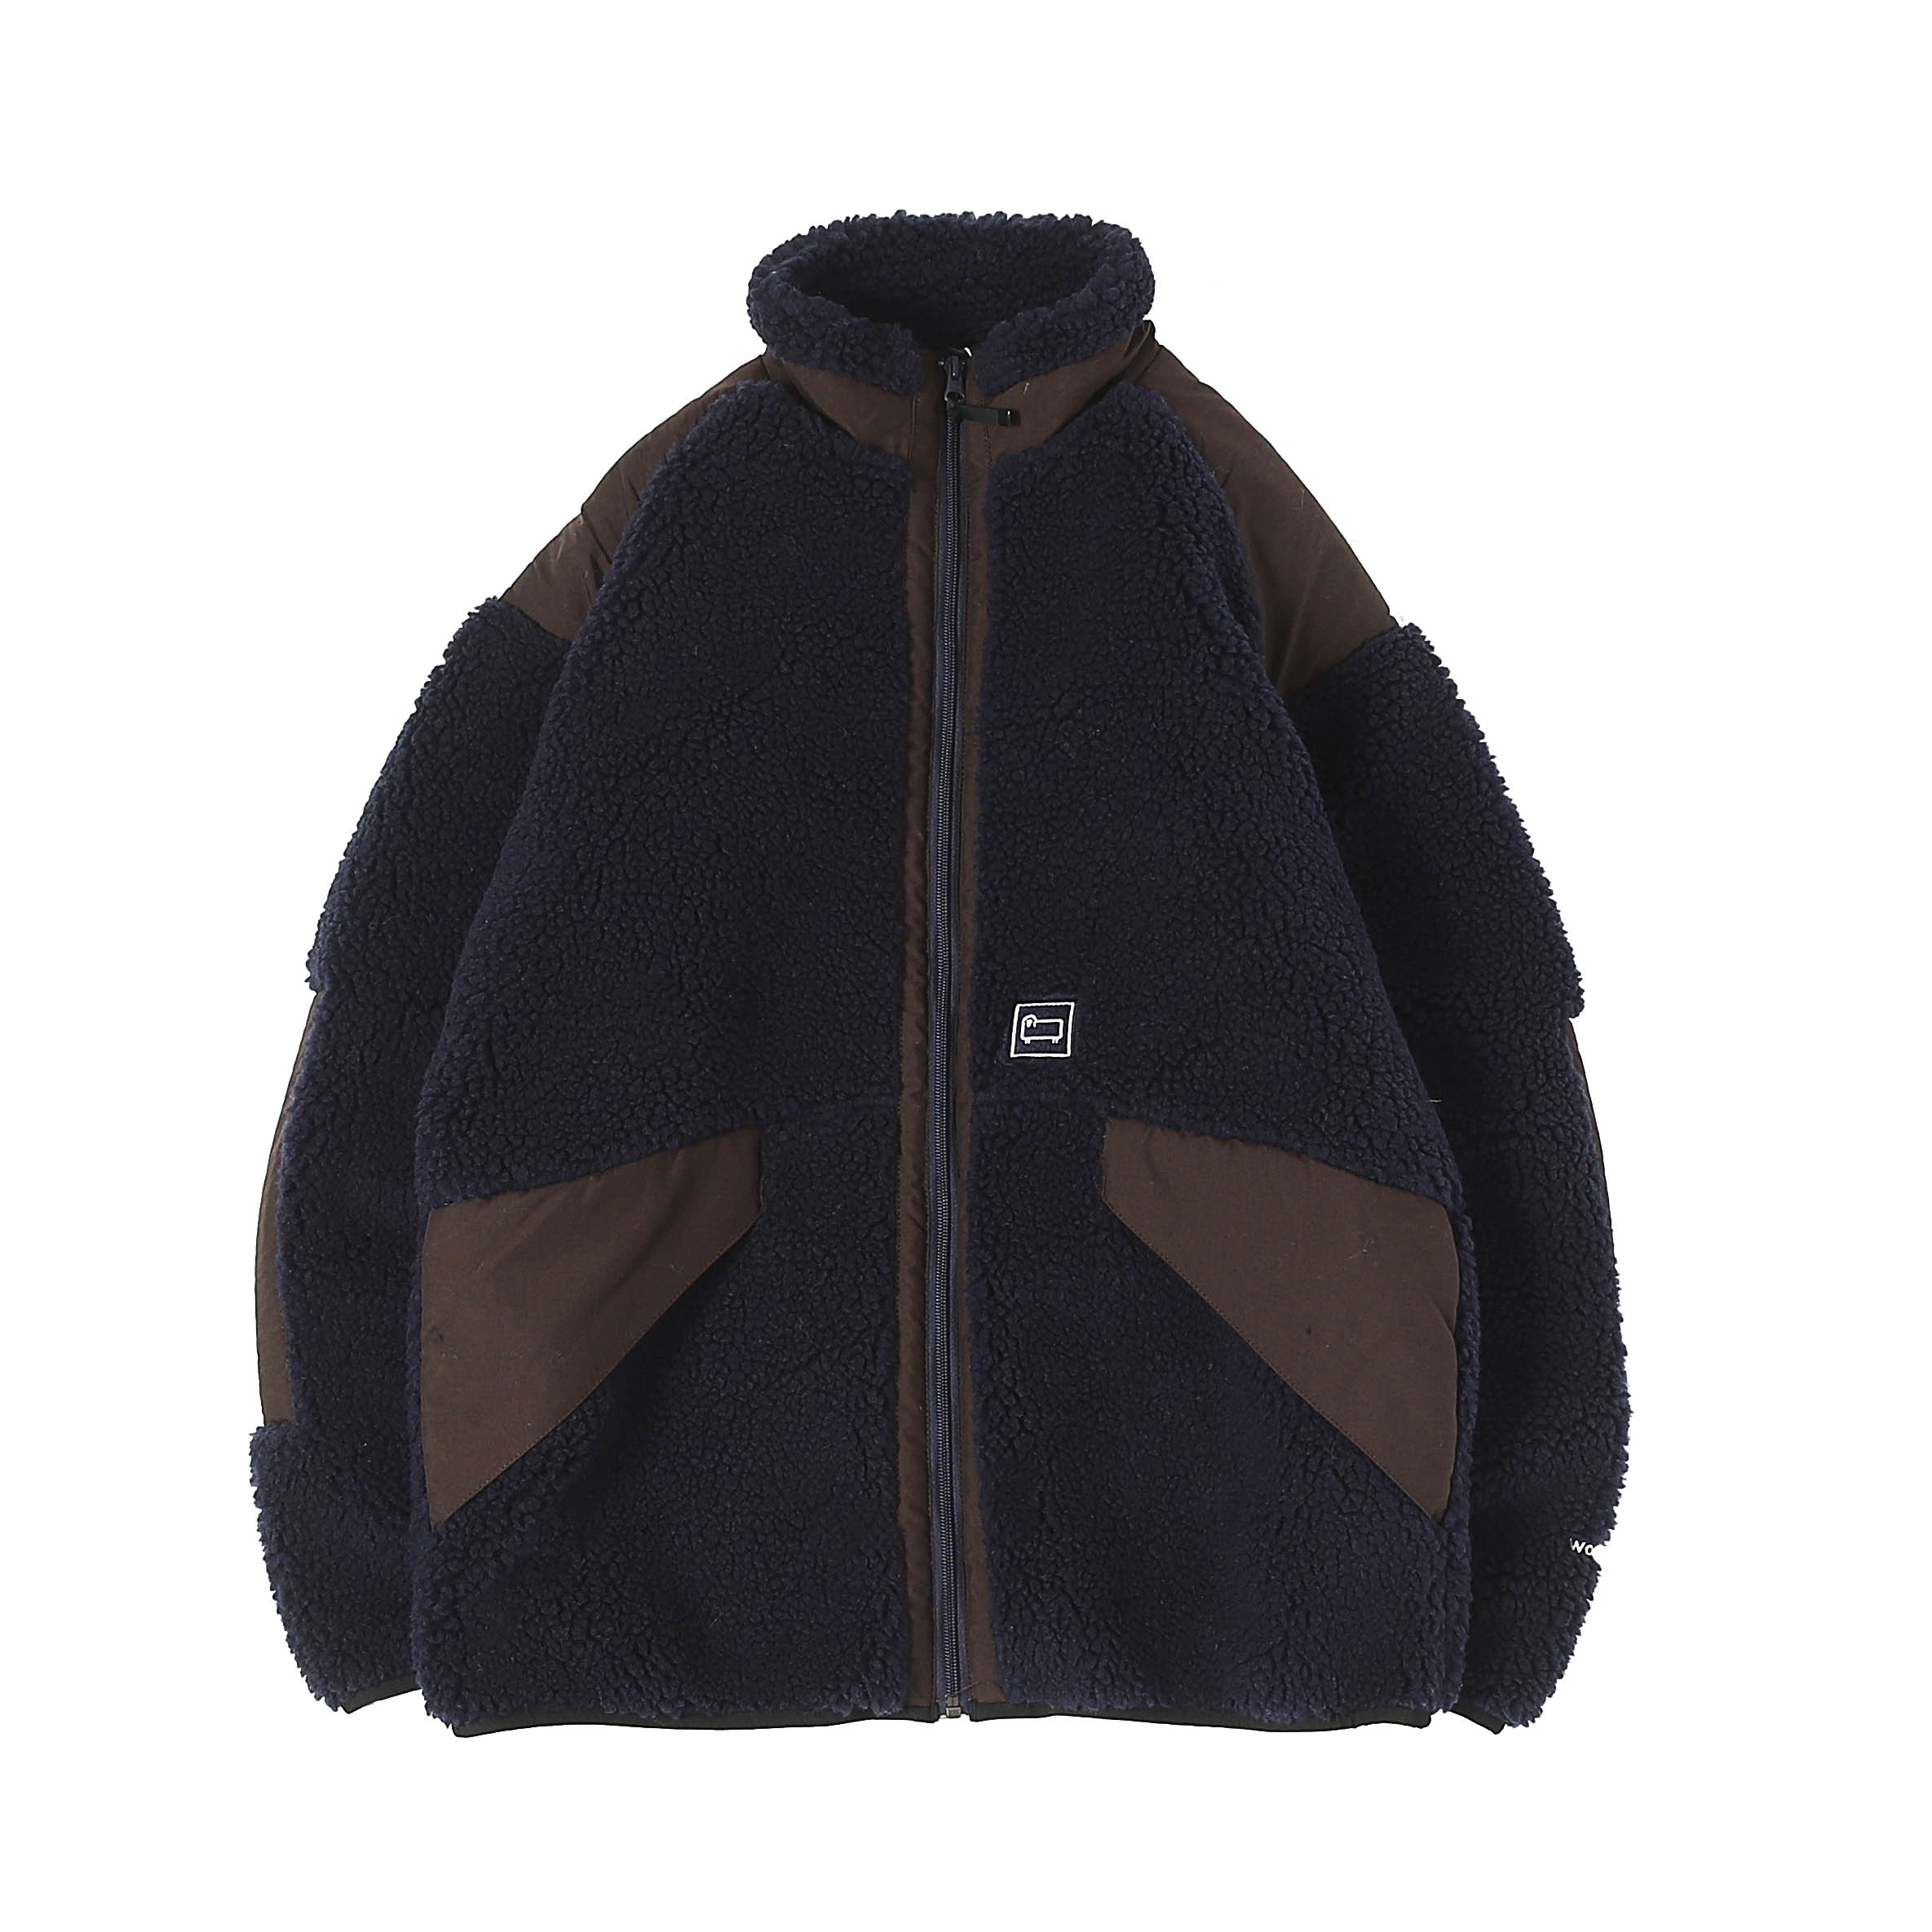 TERRA PILE FLEECE JACKET - NAVY